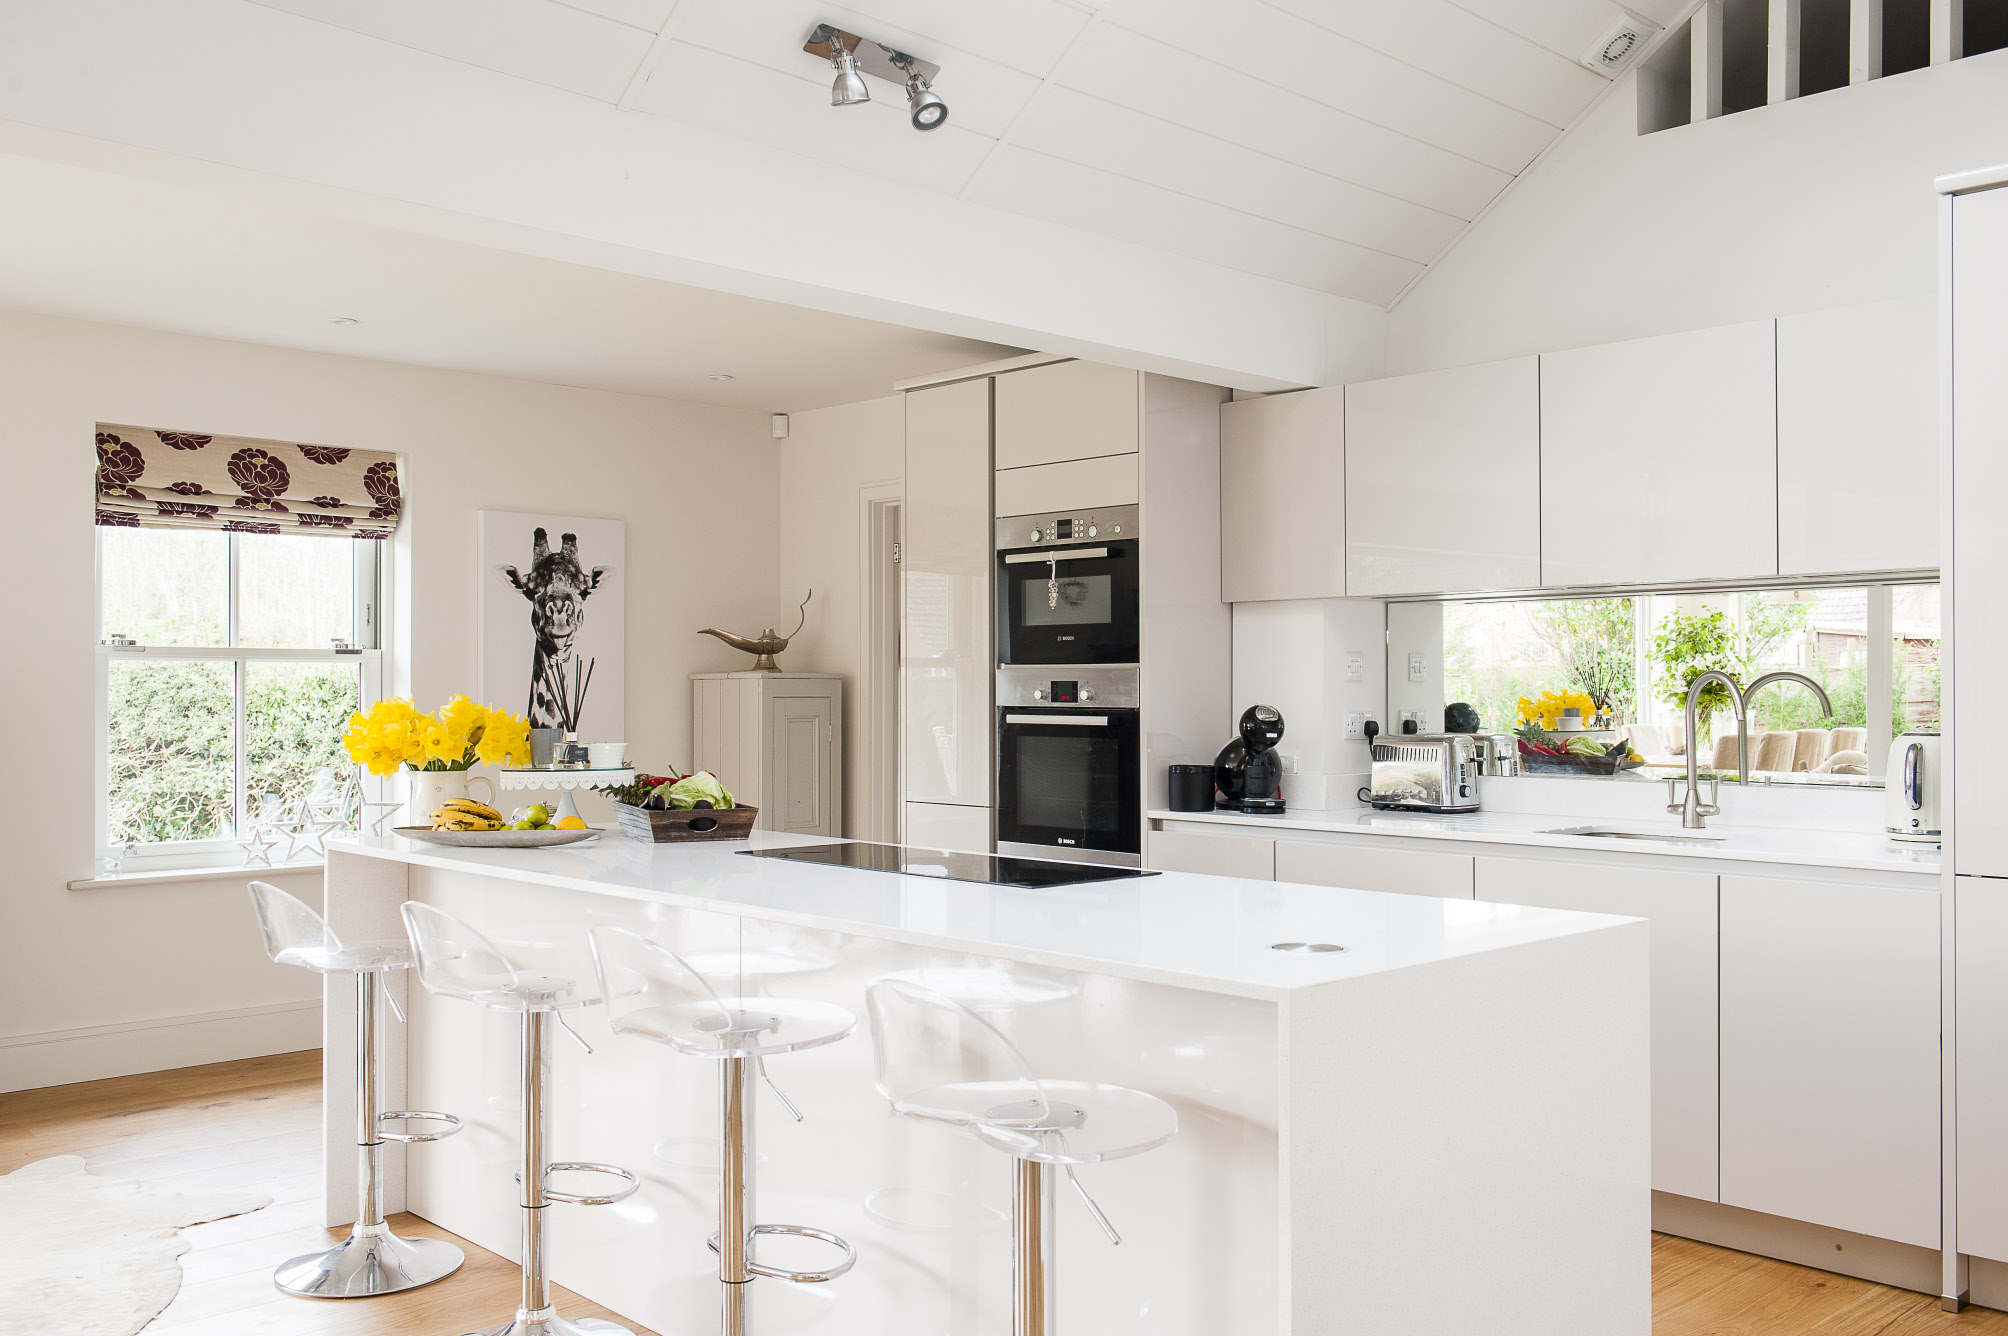 The spacious kitchen was designed and supplied by Martins of Hawkhurst. The panelled vaulted ceiling gives the Kittermasters' home a beach-house feel